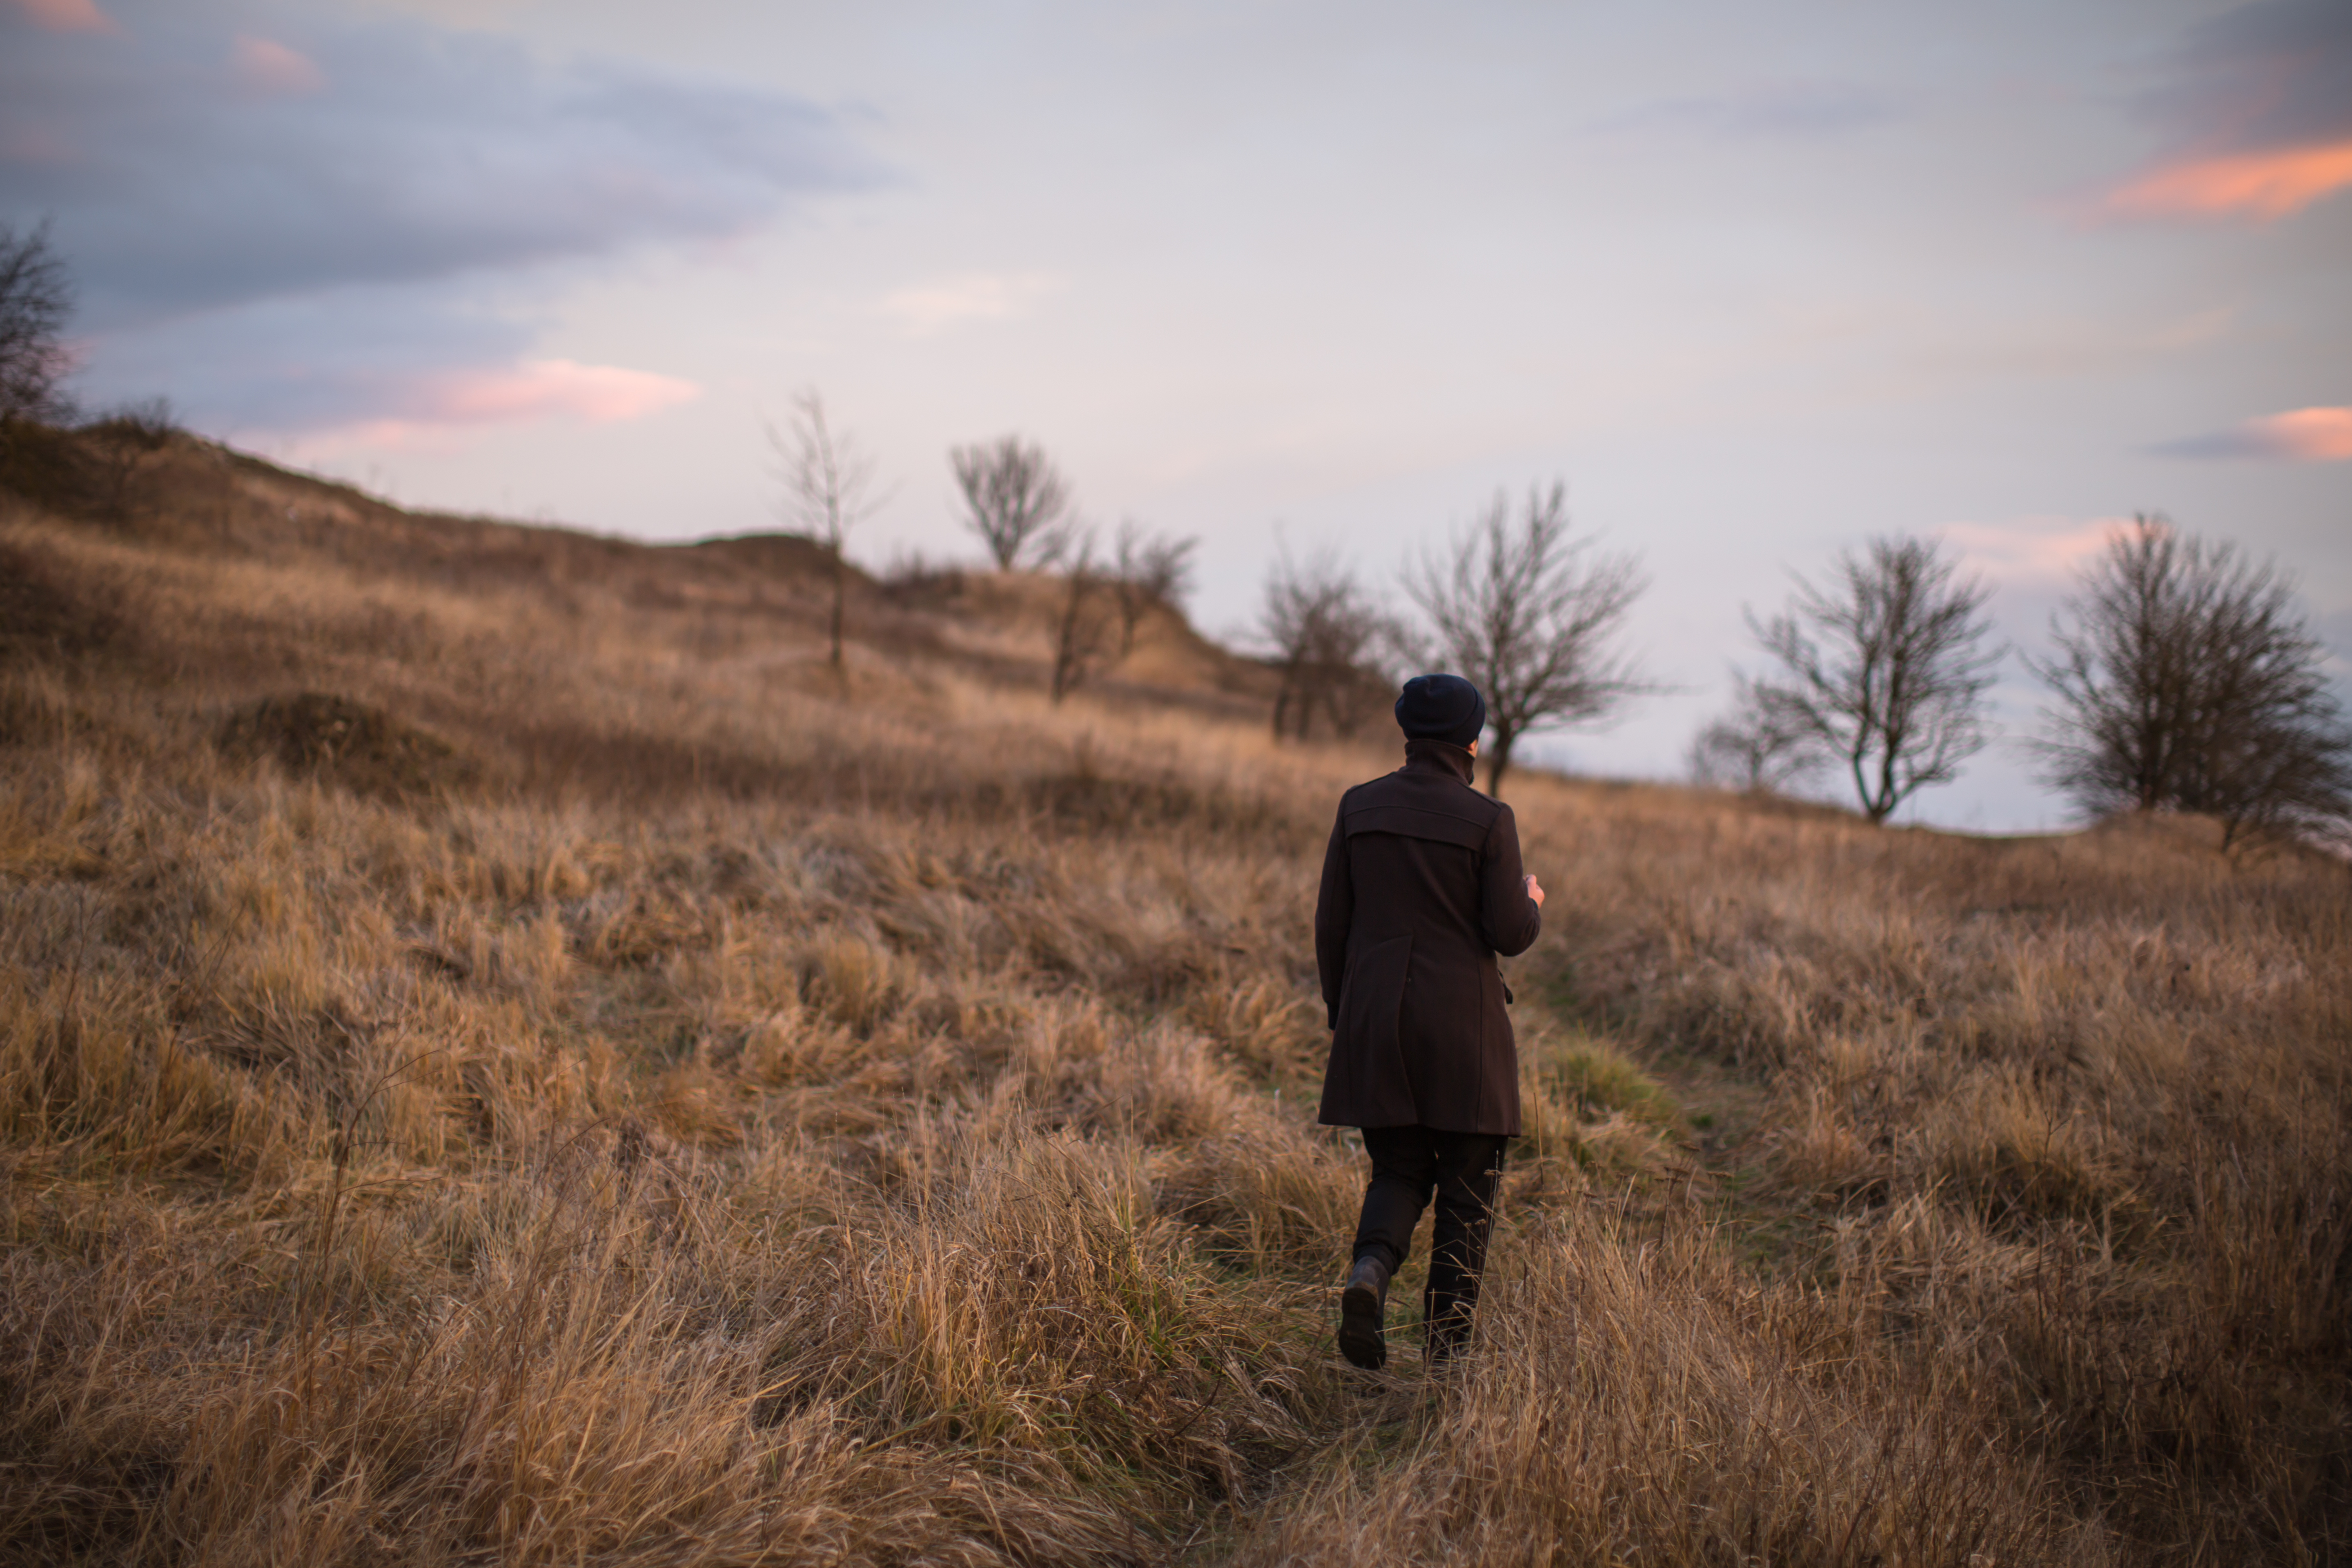 Man walking in the field with trees during sunset example image 1